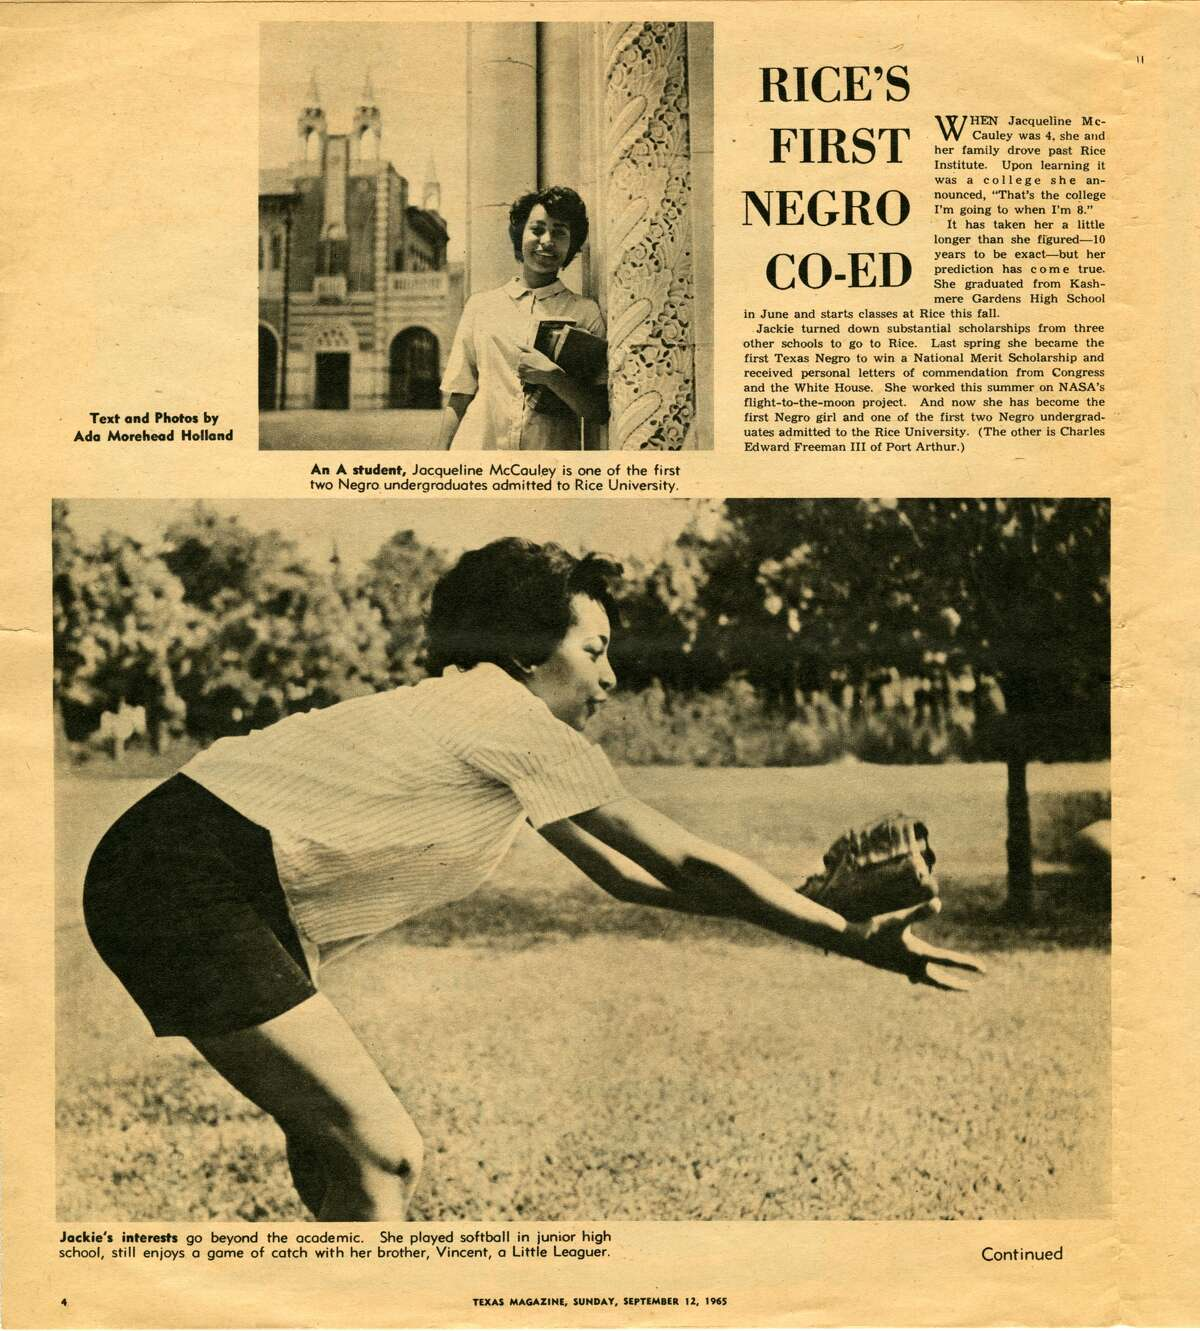 Jacqueline McCauley was the first black woman admitted to Rice University. She started school there in 1965,according to Rice archives.